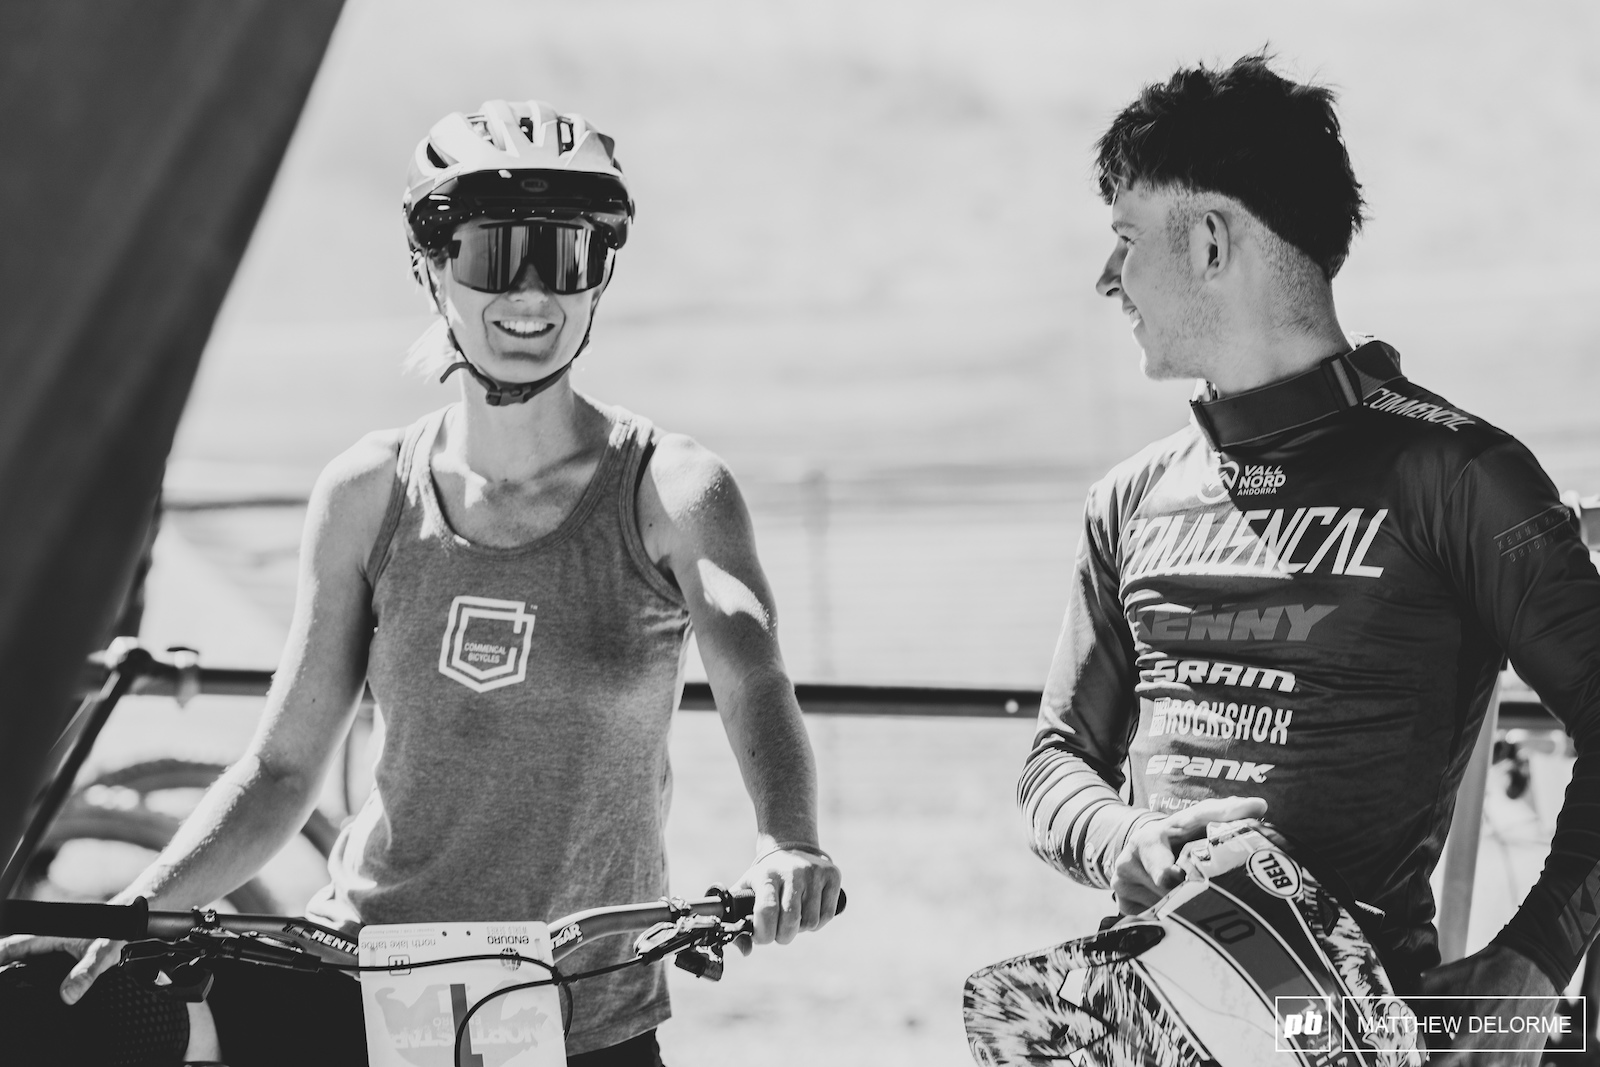 Ceclie and Antoine laugh it up before race start.